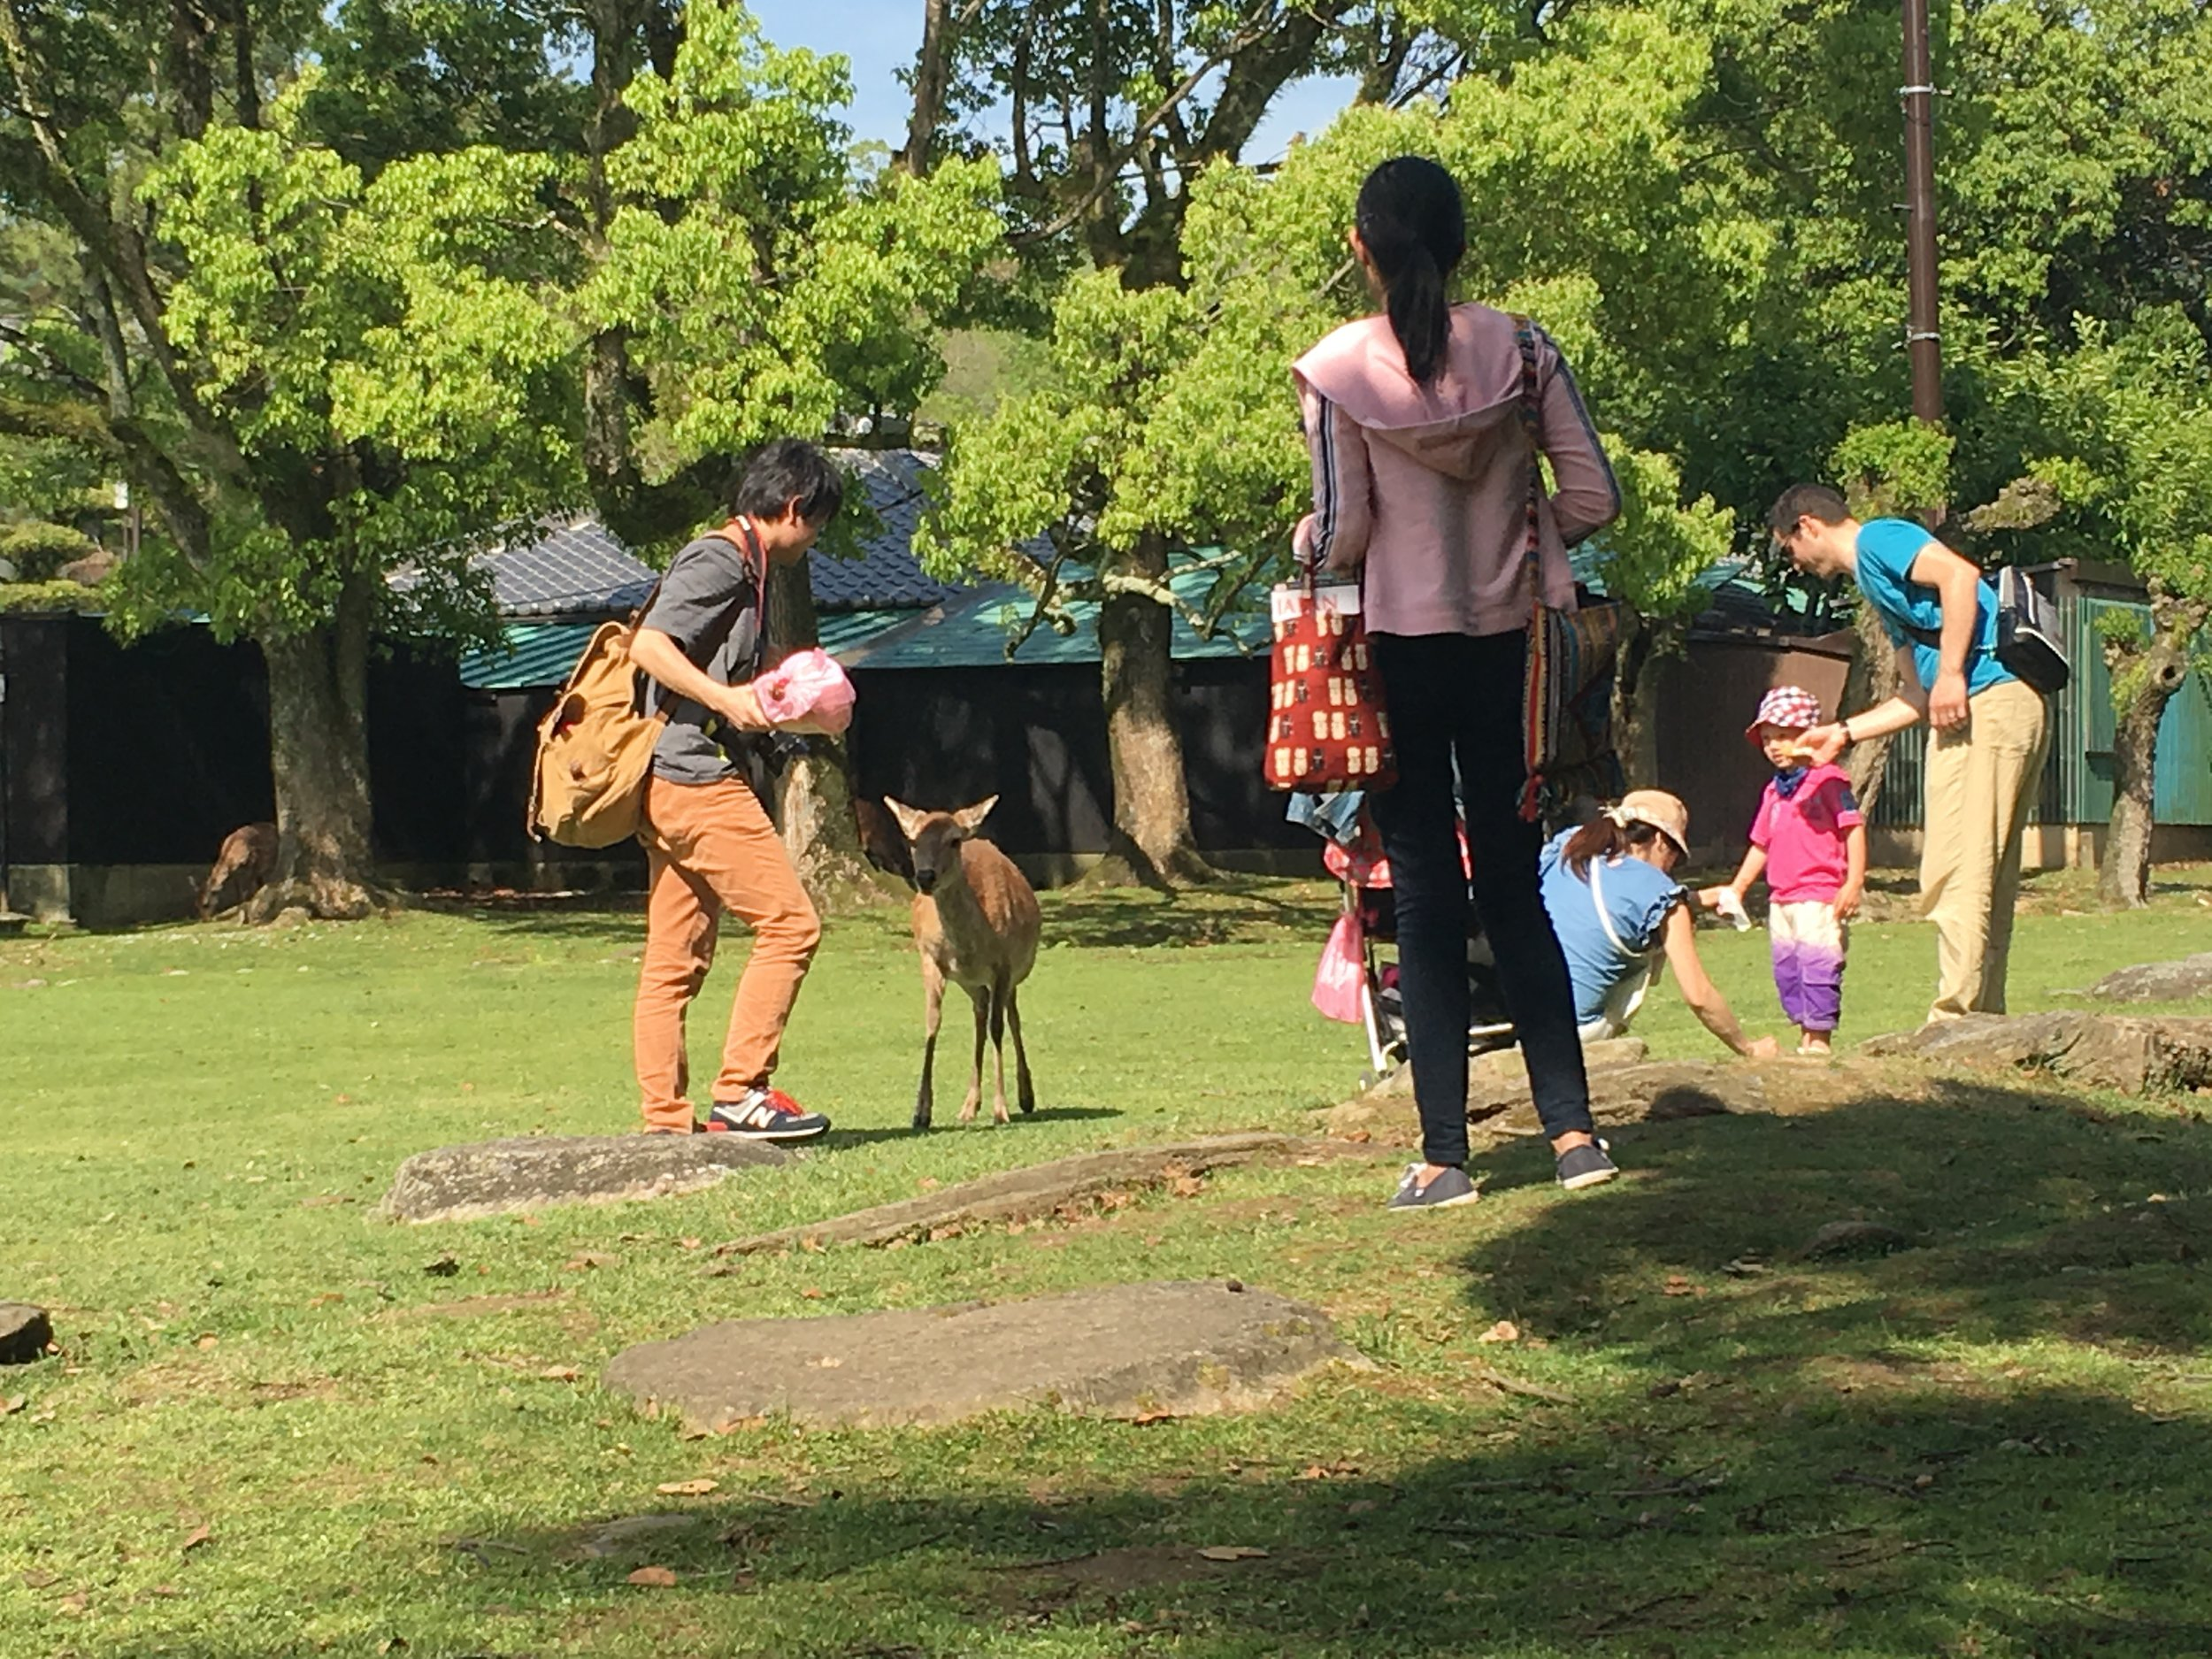 The Hip Japanese Family post dad and stroller VS deer.